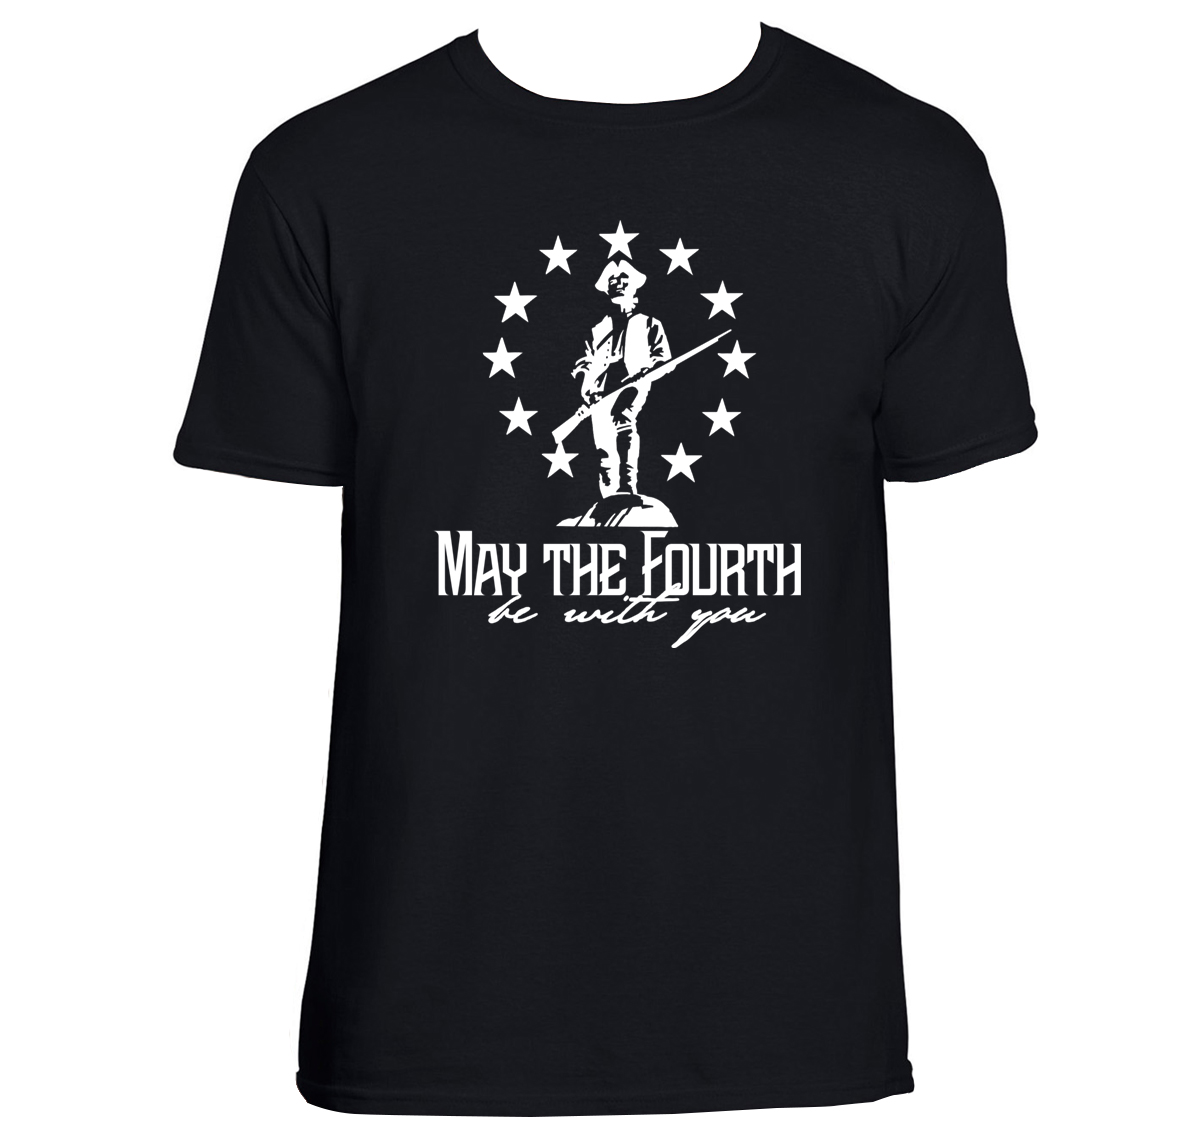 May The 4th Be With You Merchandise: May The Fourth Be With You Shirt